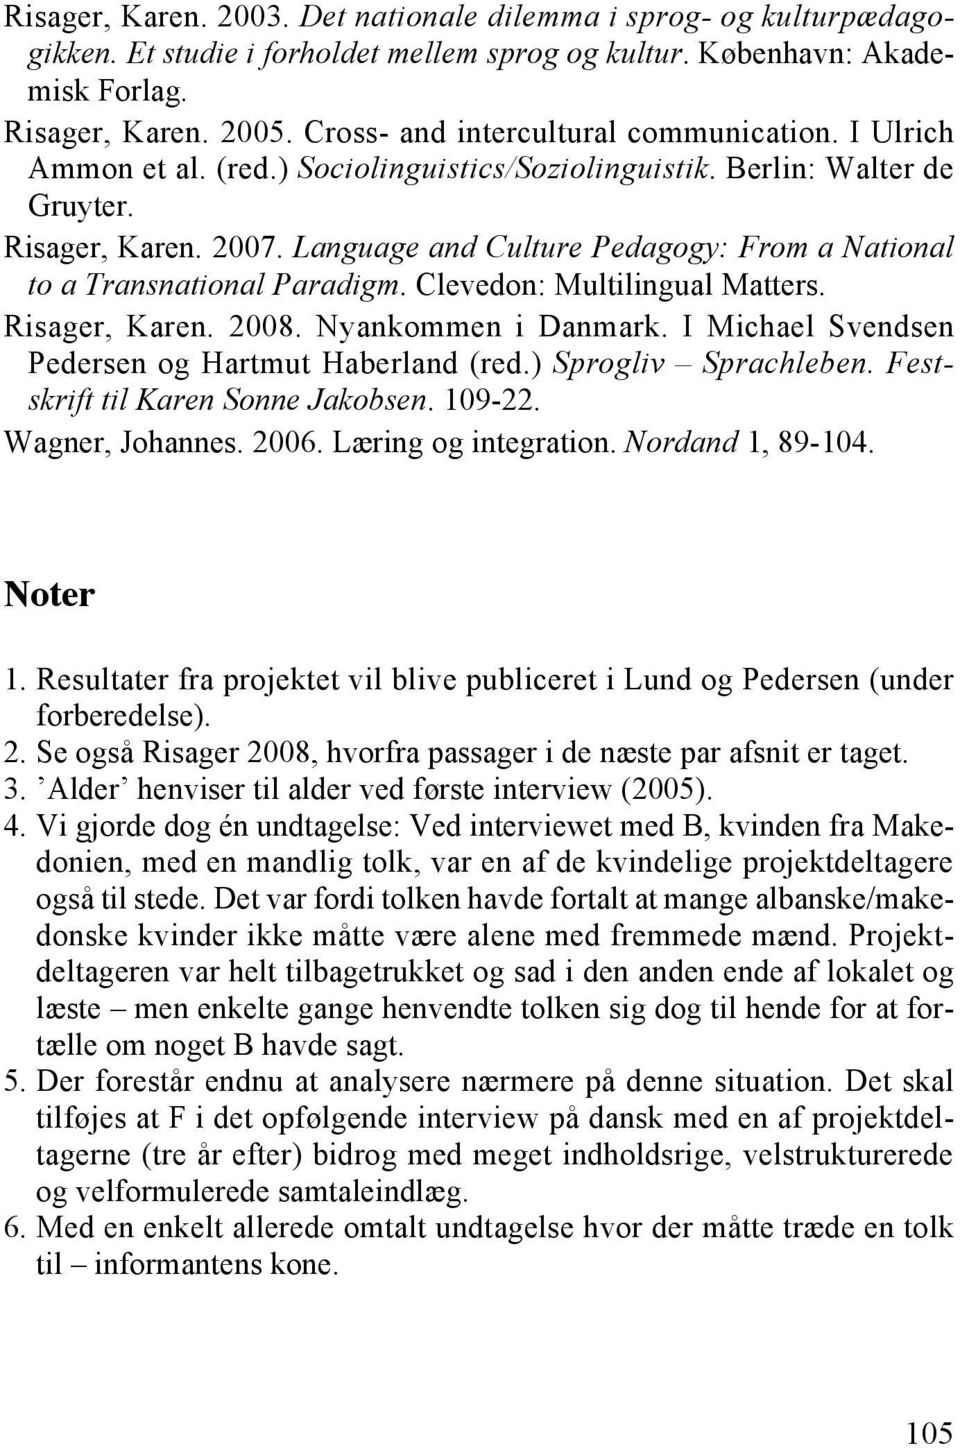 Language and Culture Pedagogy: From a National to a Transnational Paradigm. Clevedon: Multilingual Matters. Risager, Karen. 2008. Nyankommen i Danmark.